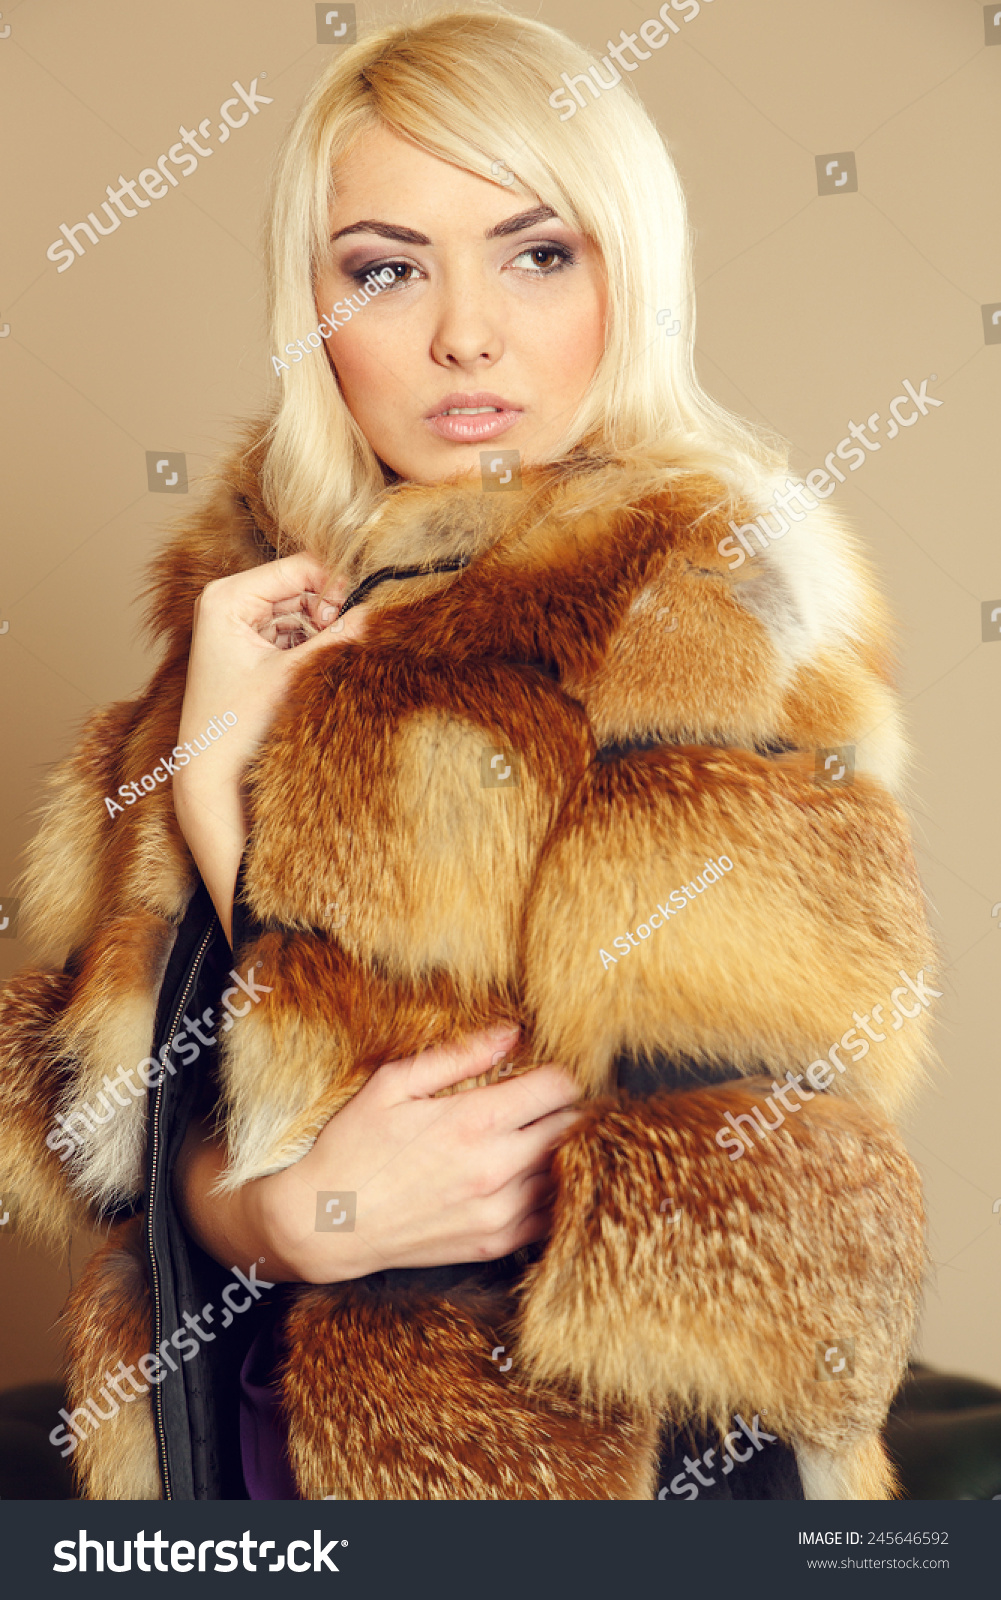 Blonde Woman Wearing Fur Coat Coat Stock Photo 245646592 ...